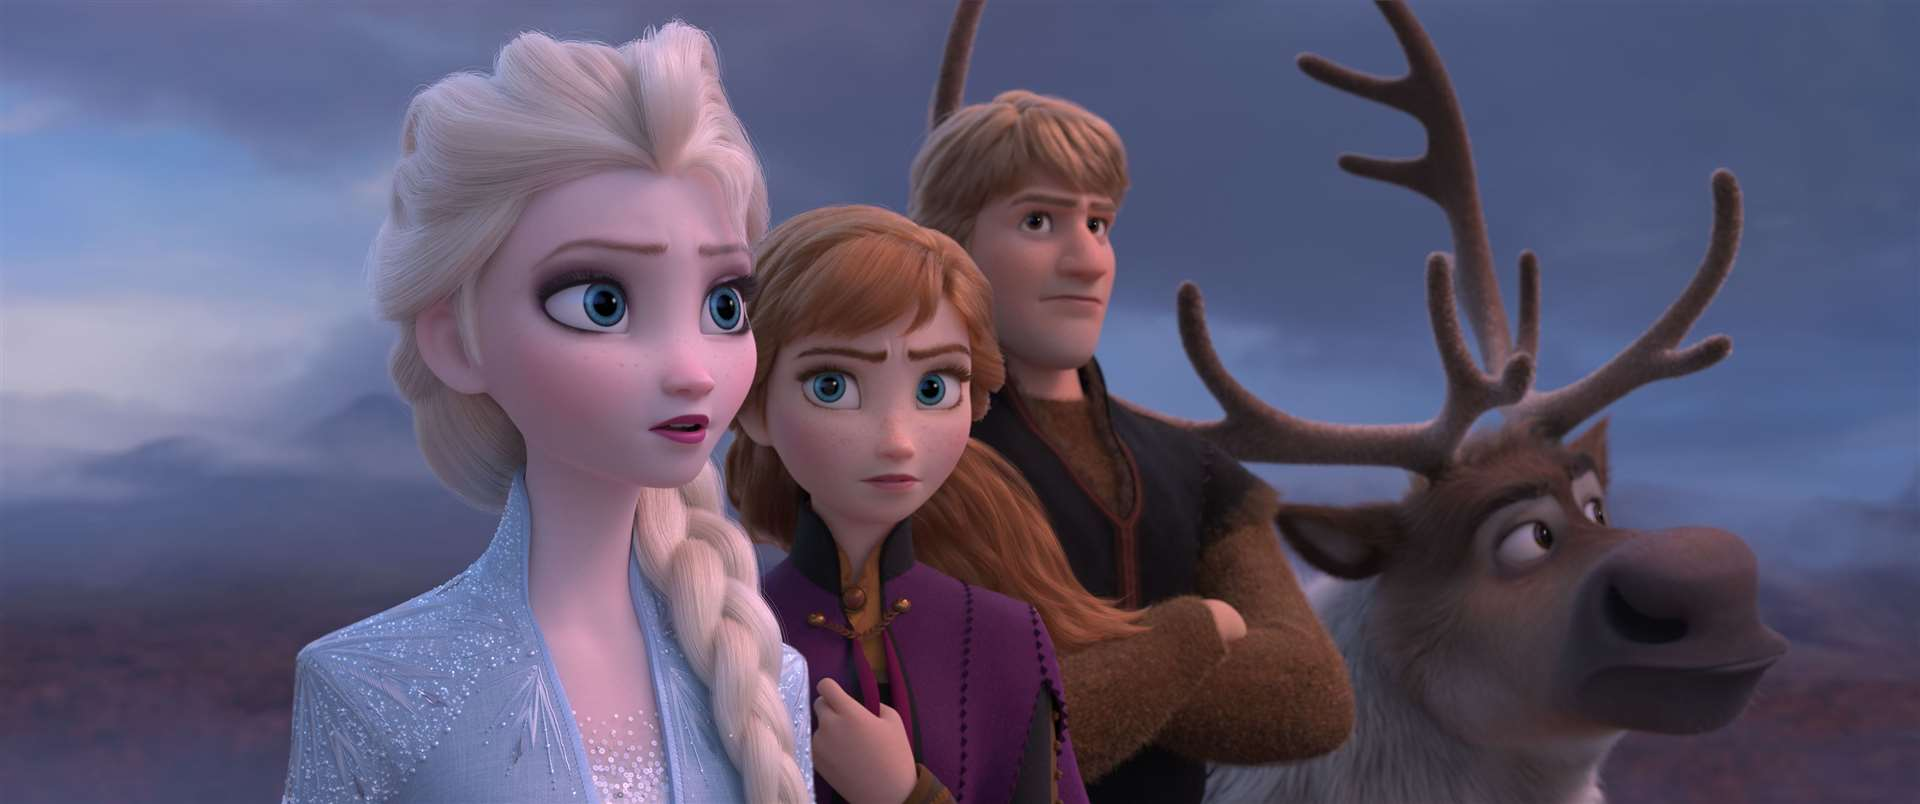 The cast of Frozen are back this weekend in Frozen 2. Picture credit:PA Photo/Disney. All Rights Reserved.